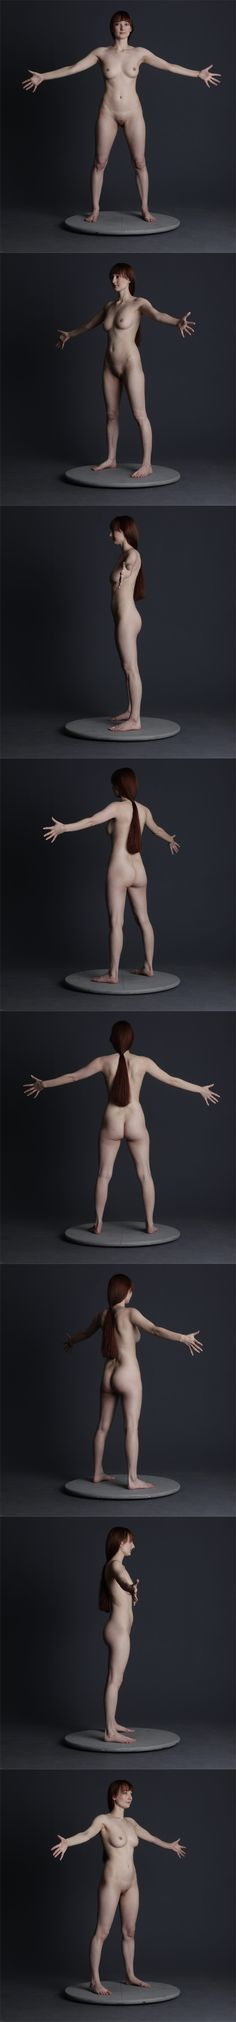 Nude figure drawing pose reference turn-around by http://mjranum-stock.deviantart.com